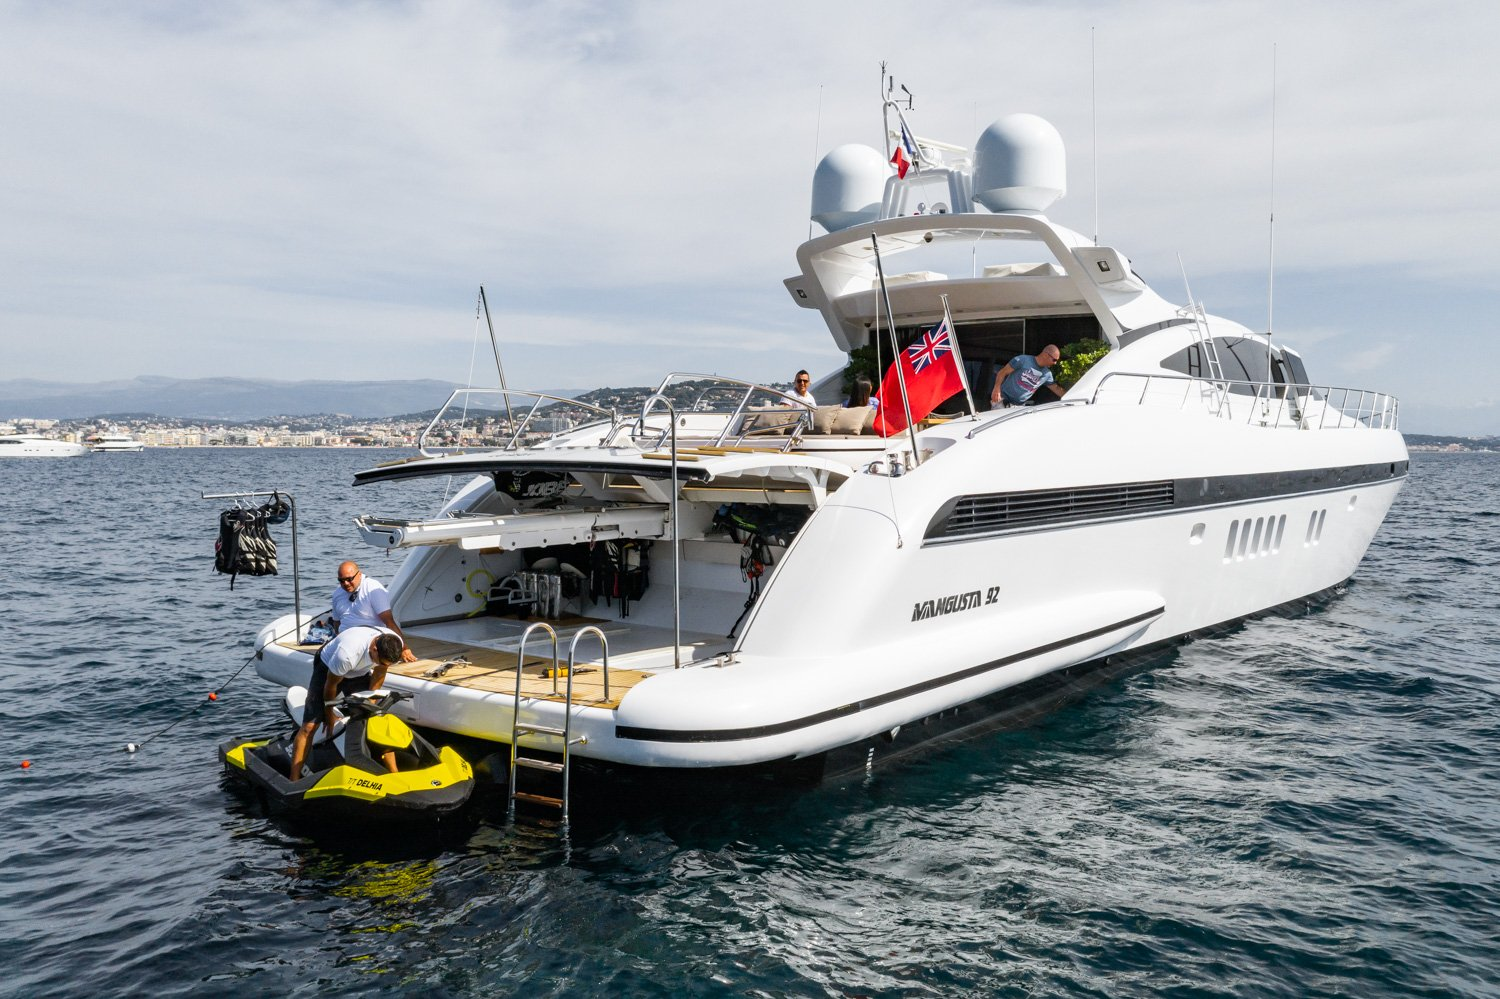 mangust 92 yacht for sale58